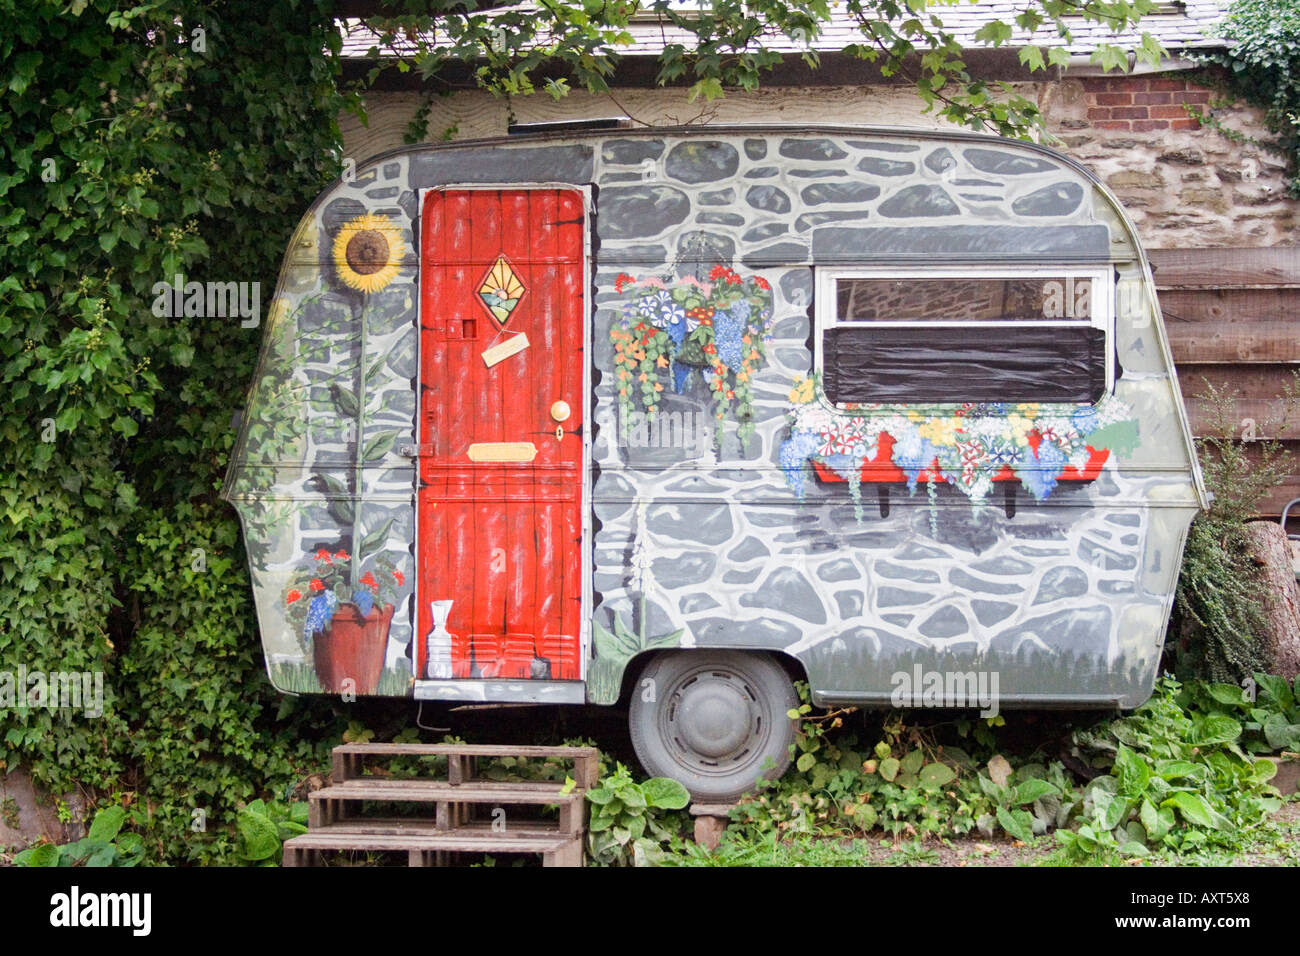 Decorated caravan.  Trompe l'oeil affect. In front of a stone wall. Craft centre. Llangollen. Wales. UK. (editorial Stock Photo